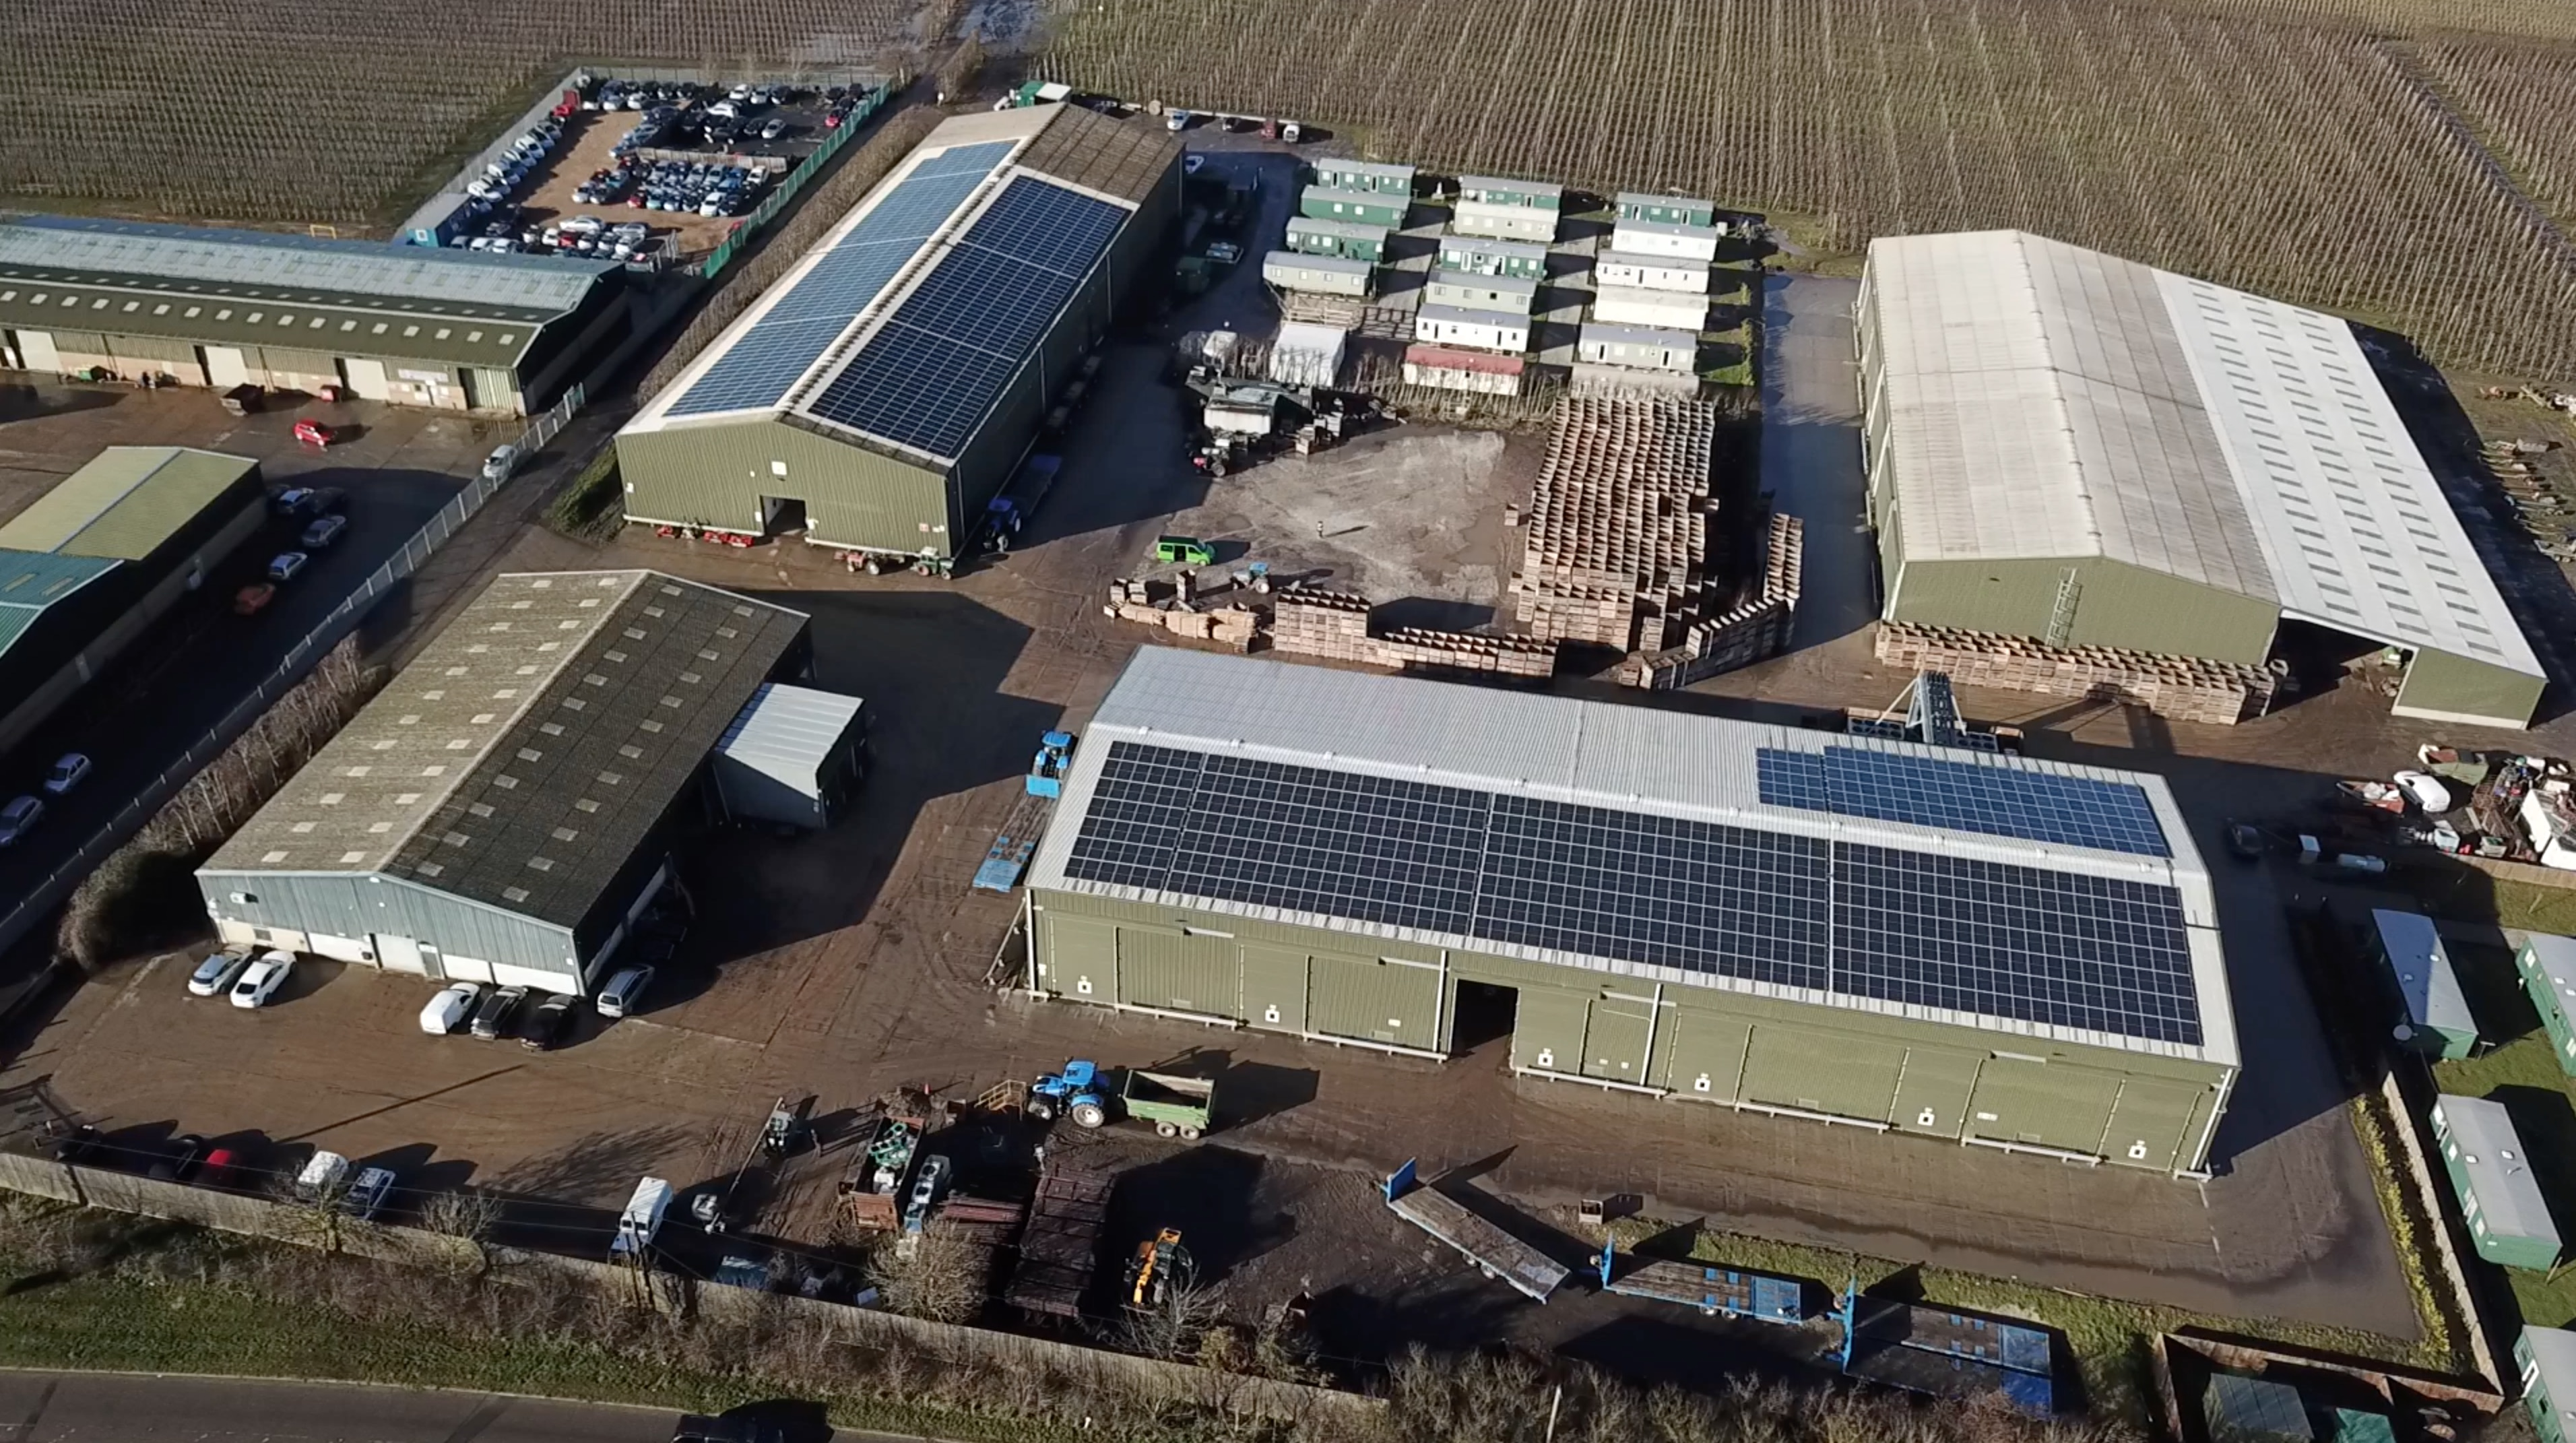 The new solar array will provide all of the power for the packing and cold storage operations